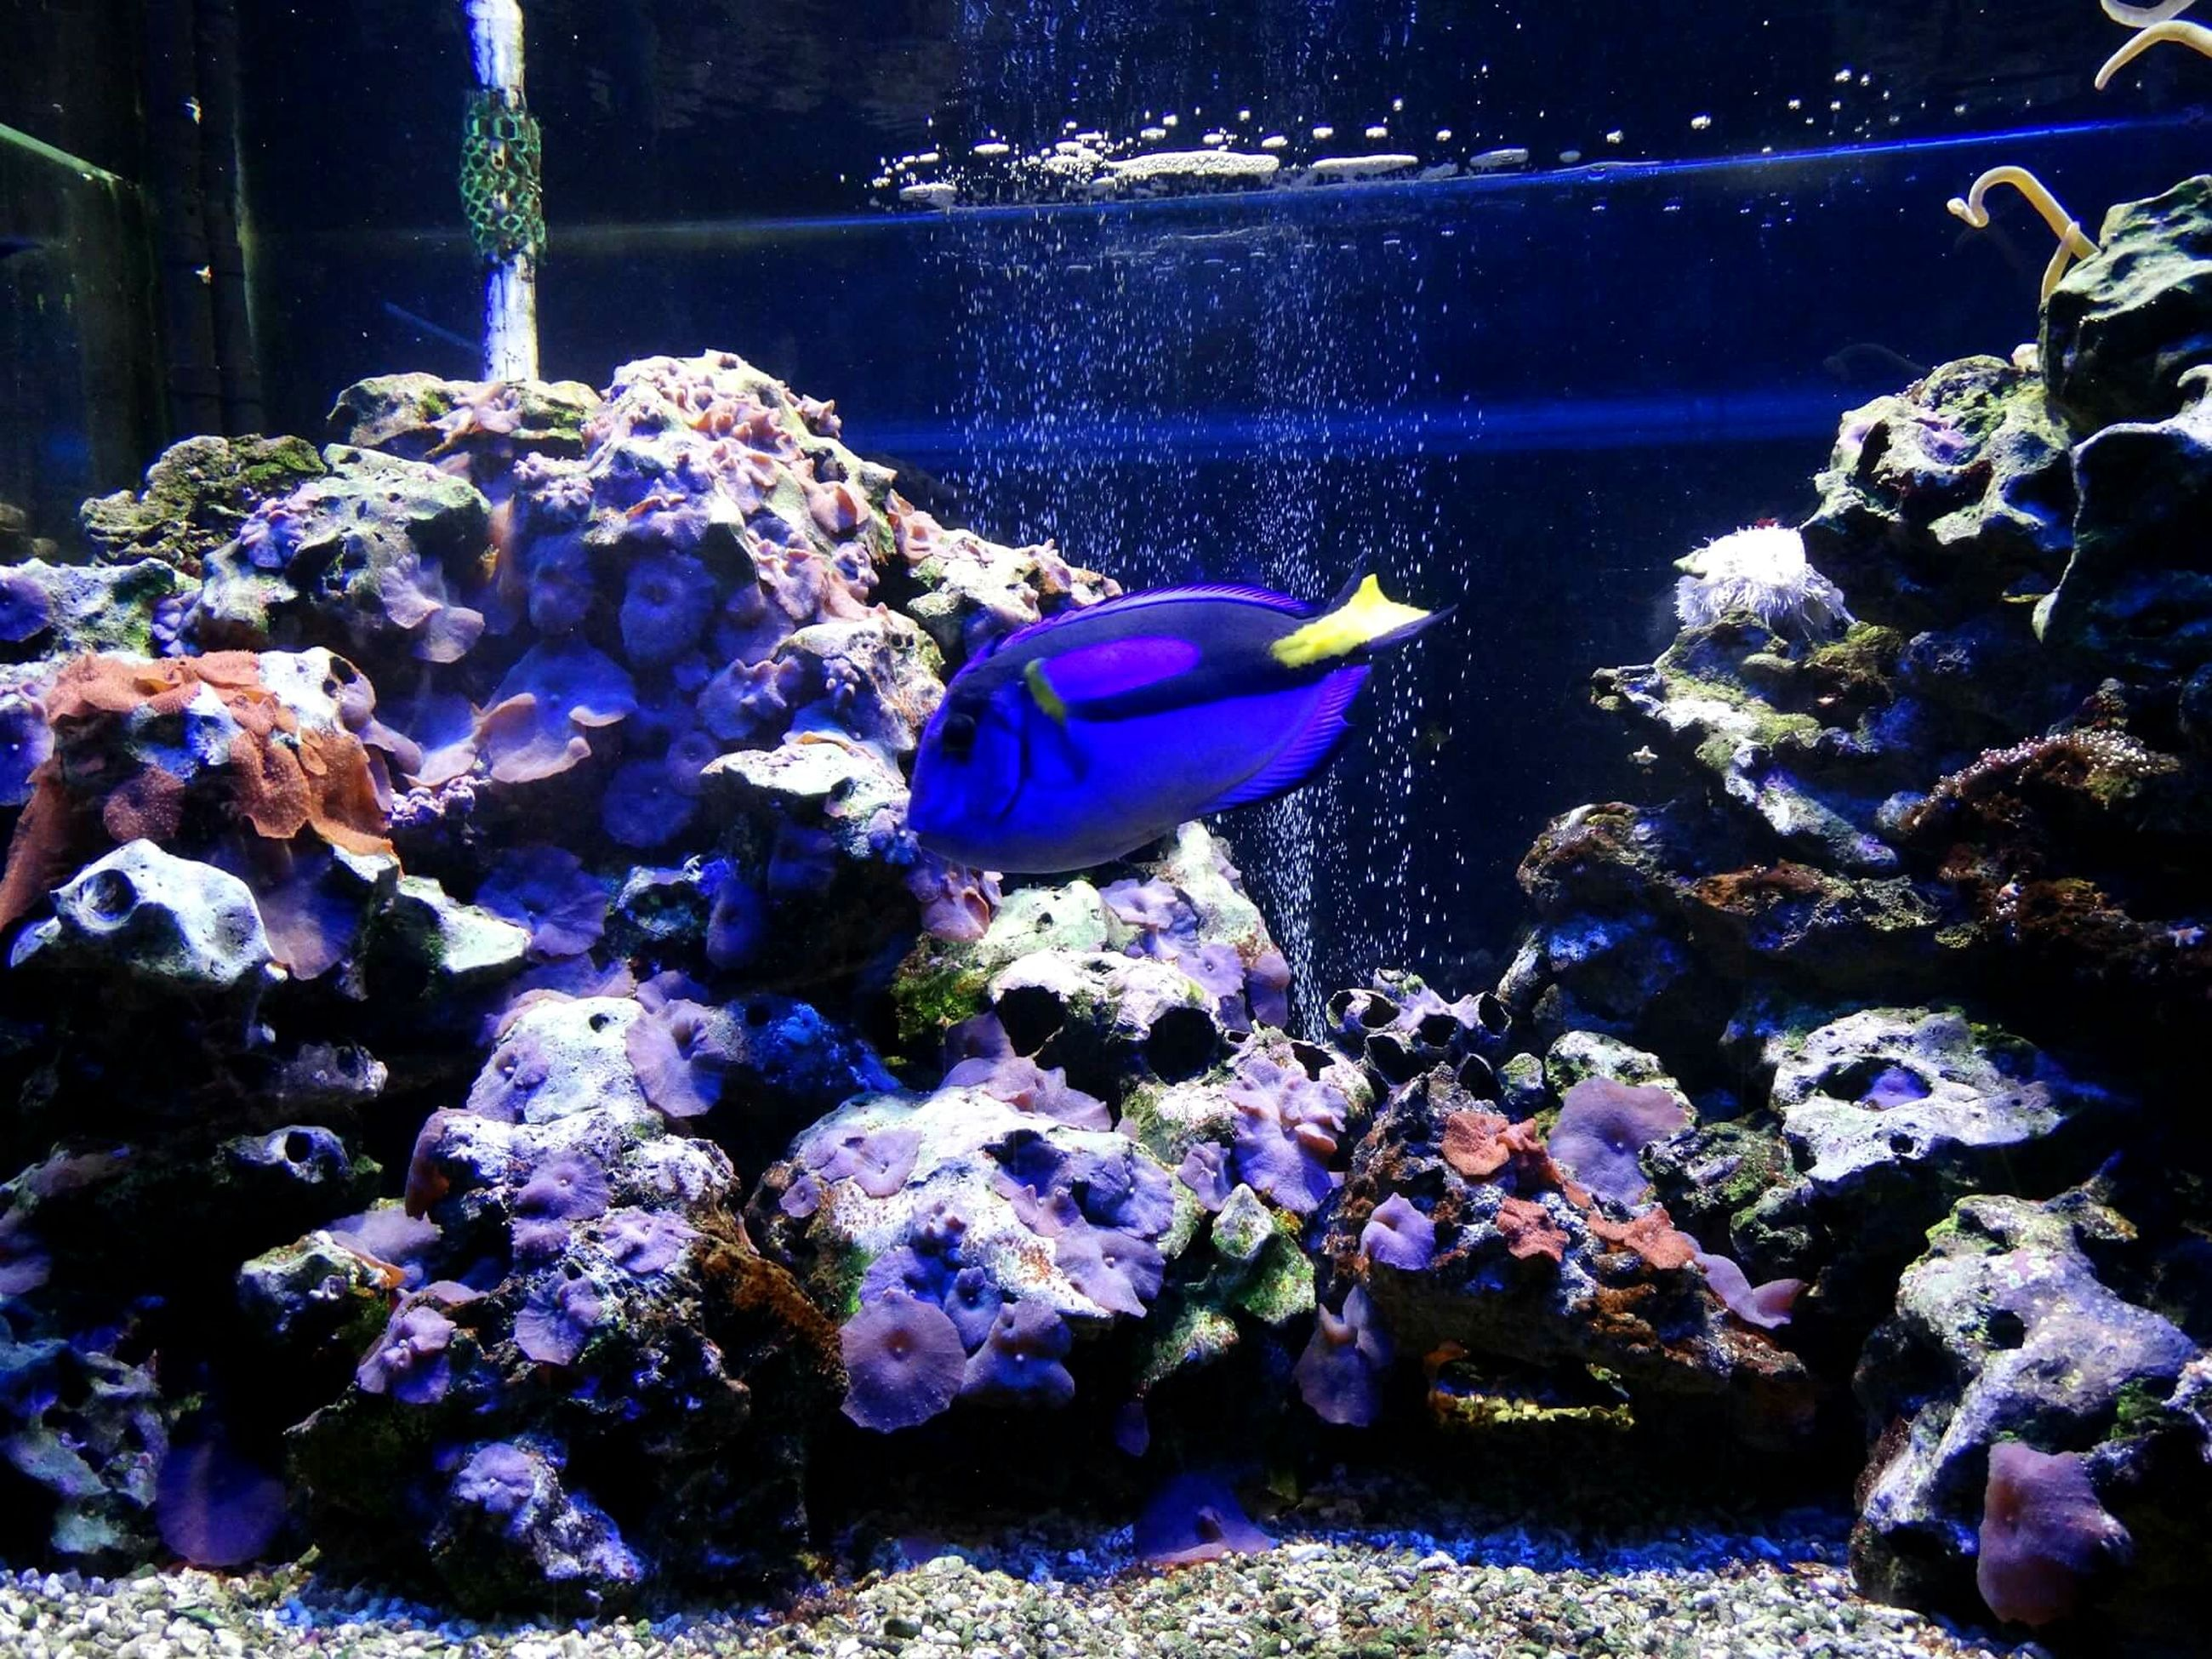 animal themes, animals in the wild, swimming, water, sea life, wildlife, fish, underwater, sea, close-up, nature, undersea, beauty in nature, zoology, togetherness, coral, reef, vibrant color, animal, symbiotic relationship, animal markings